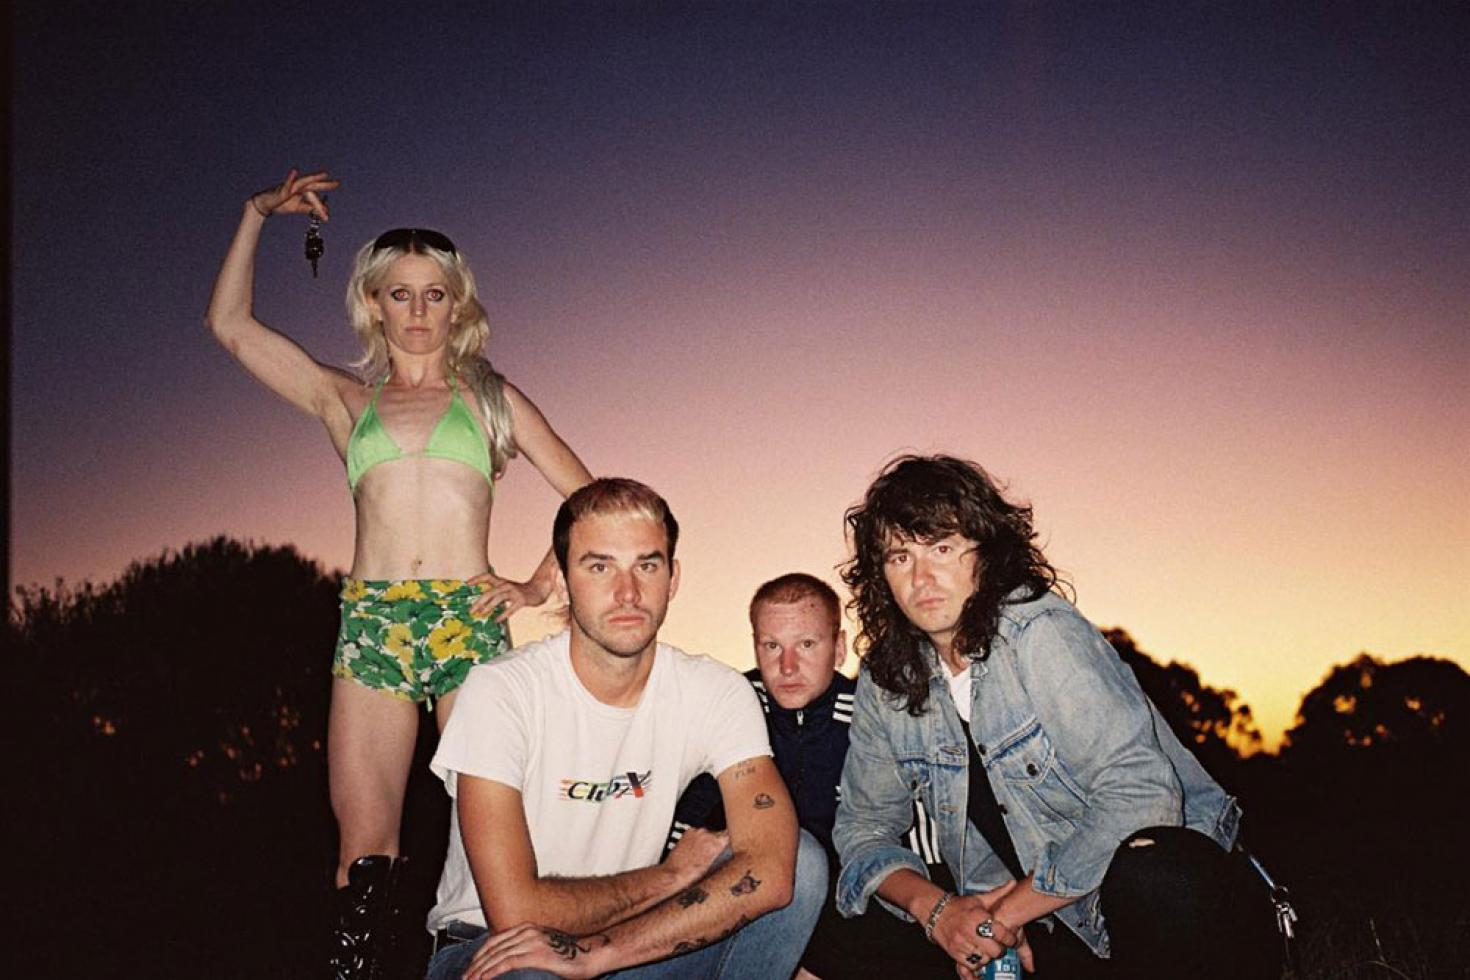 Amyl and the Sniffers release new single and video 'Security'